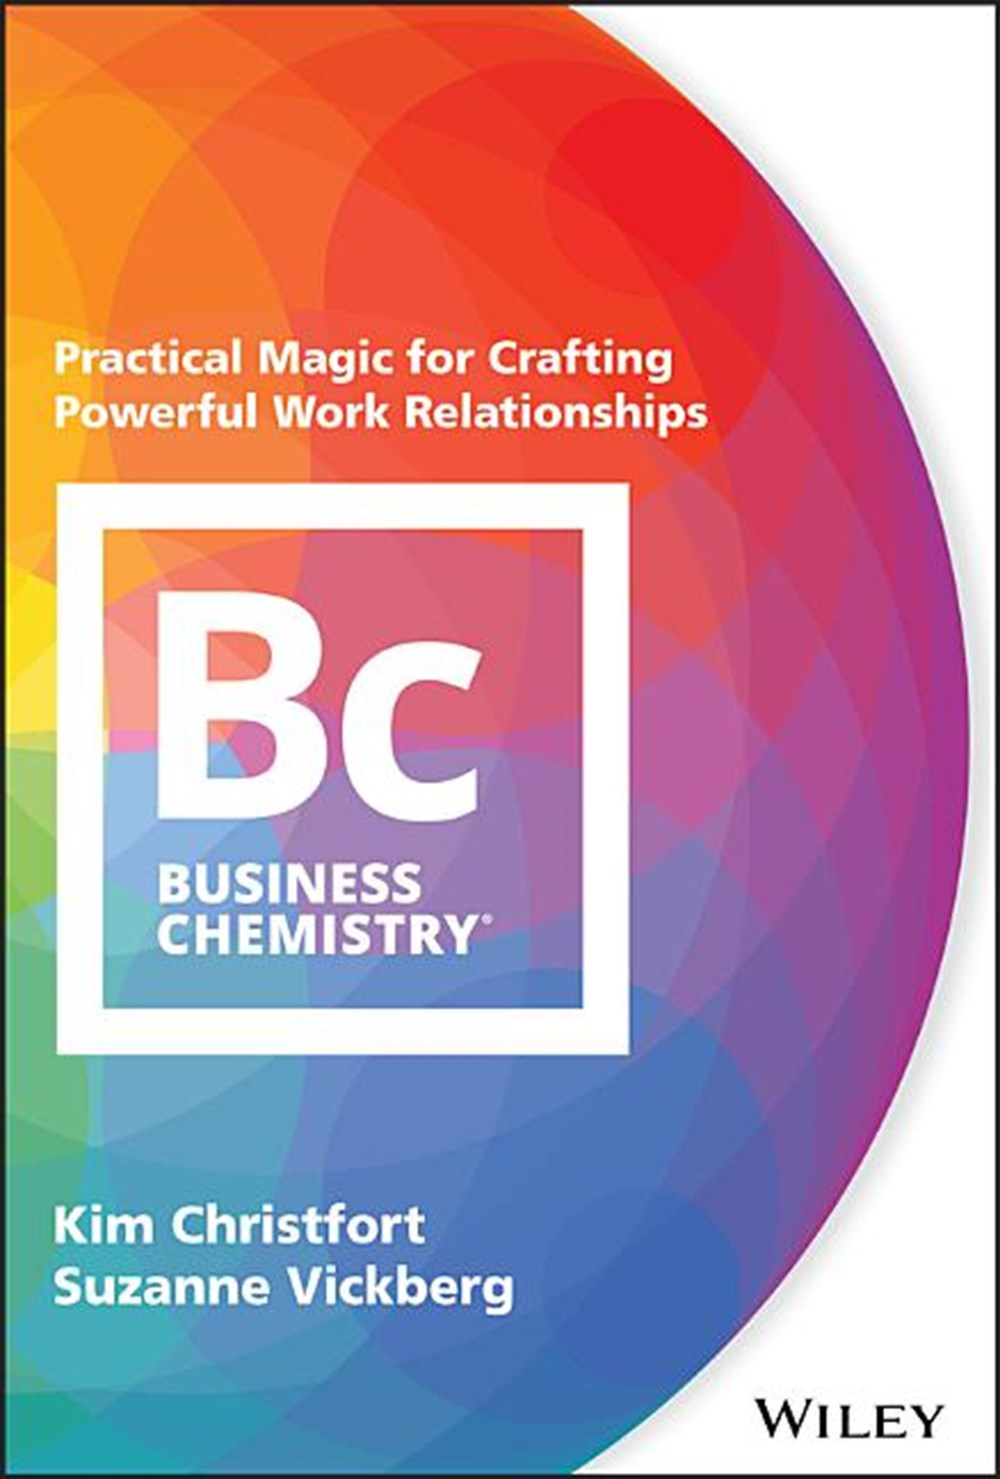 Business Chemistry Practical Magic for Crafting Powerful Work Relationships